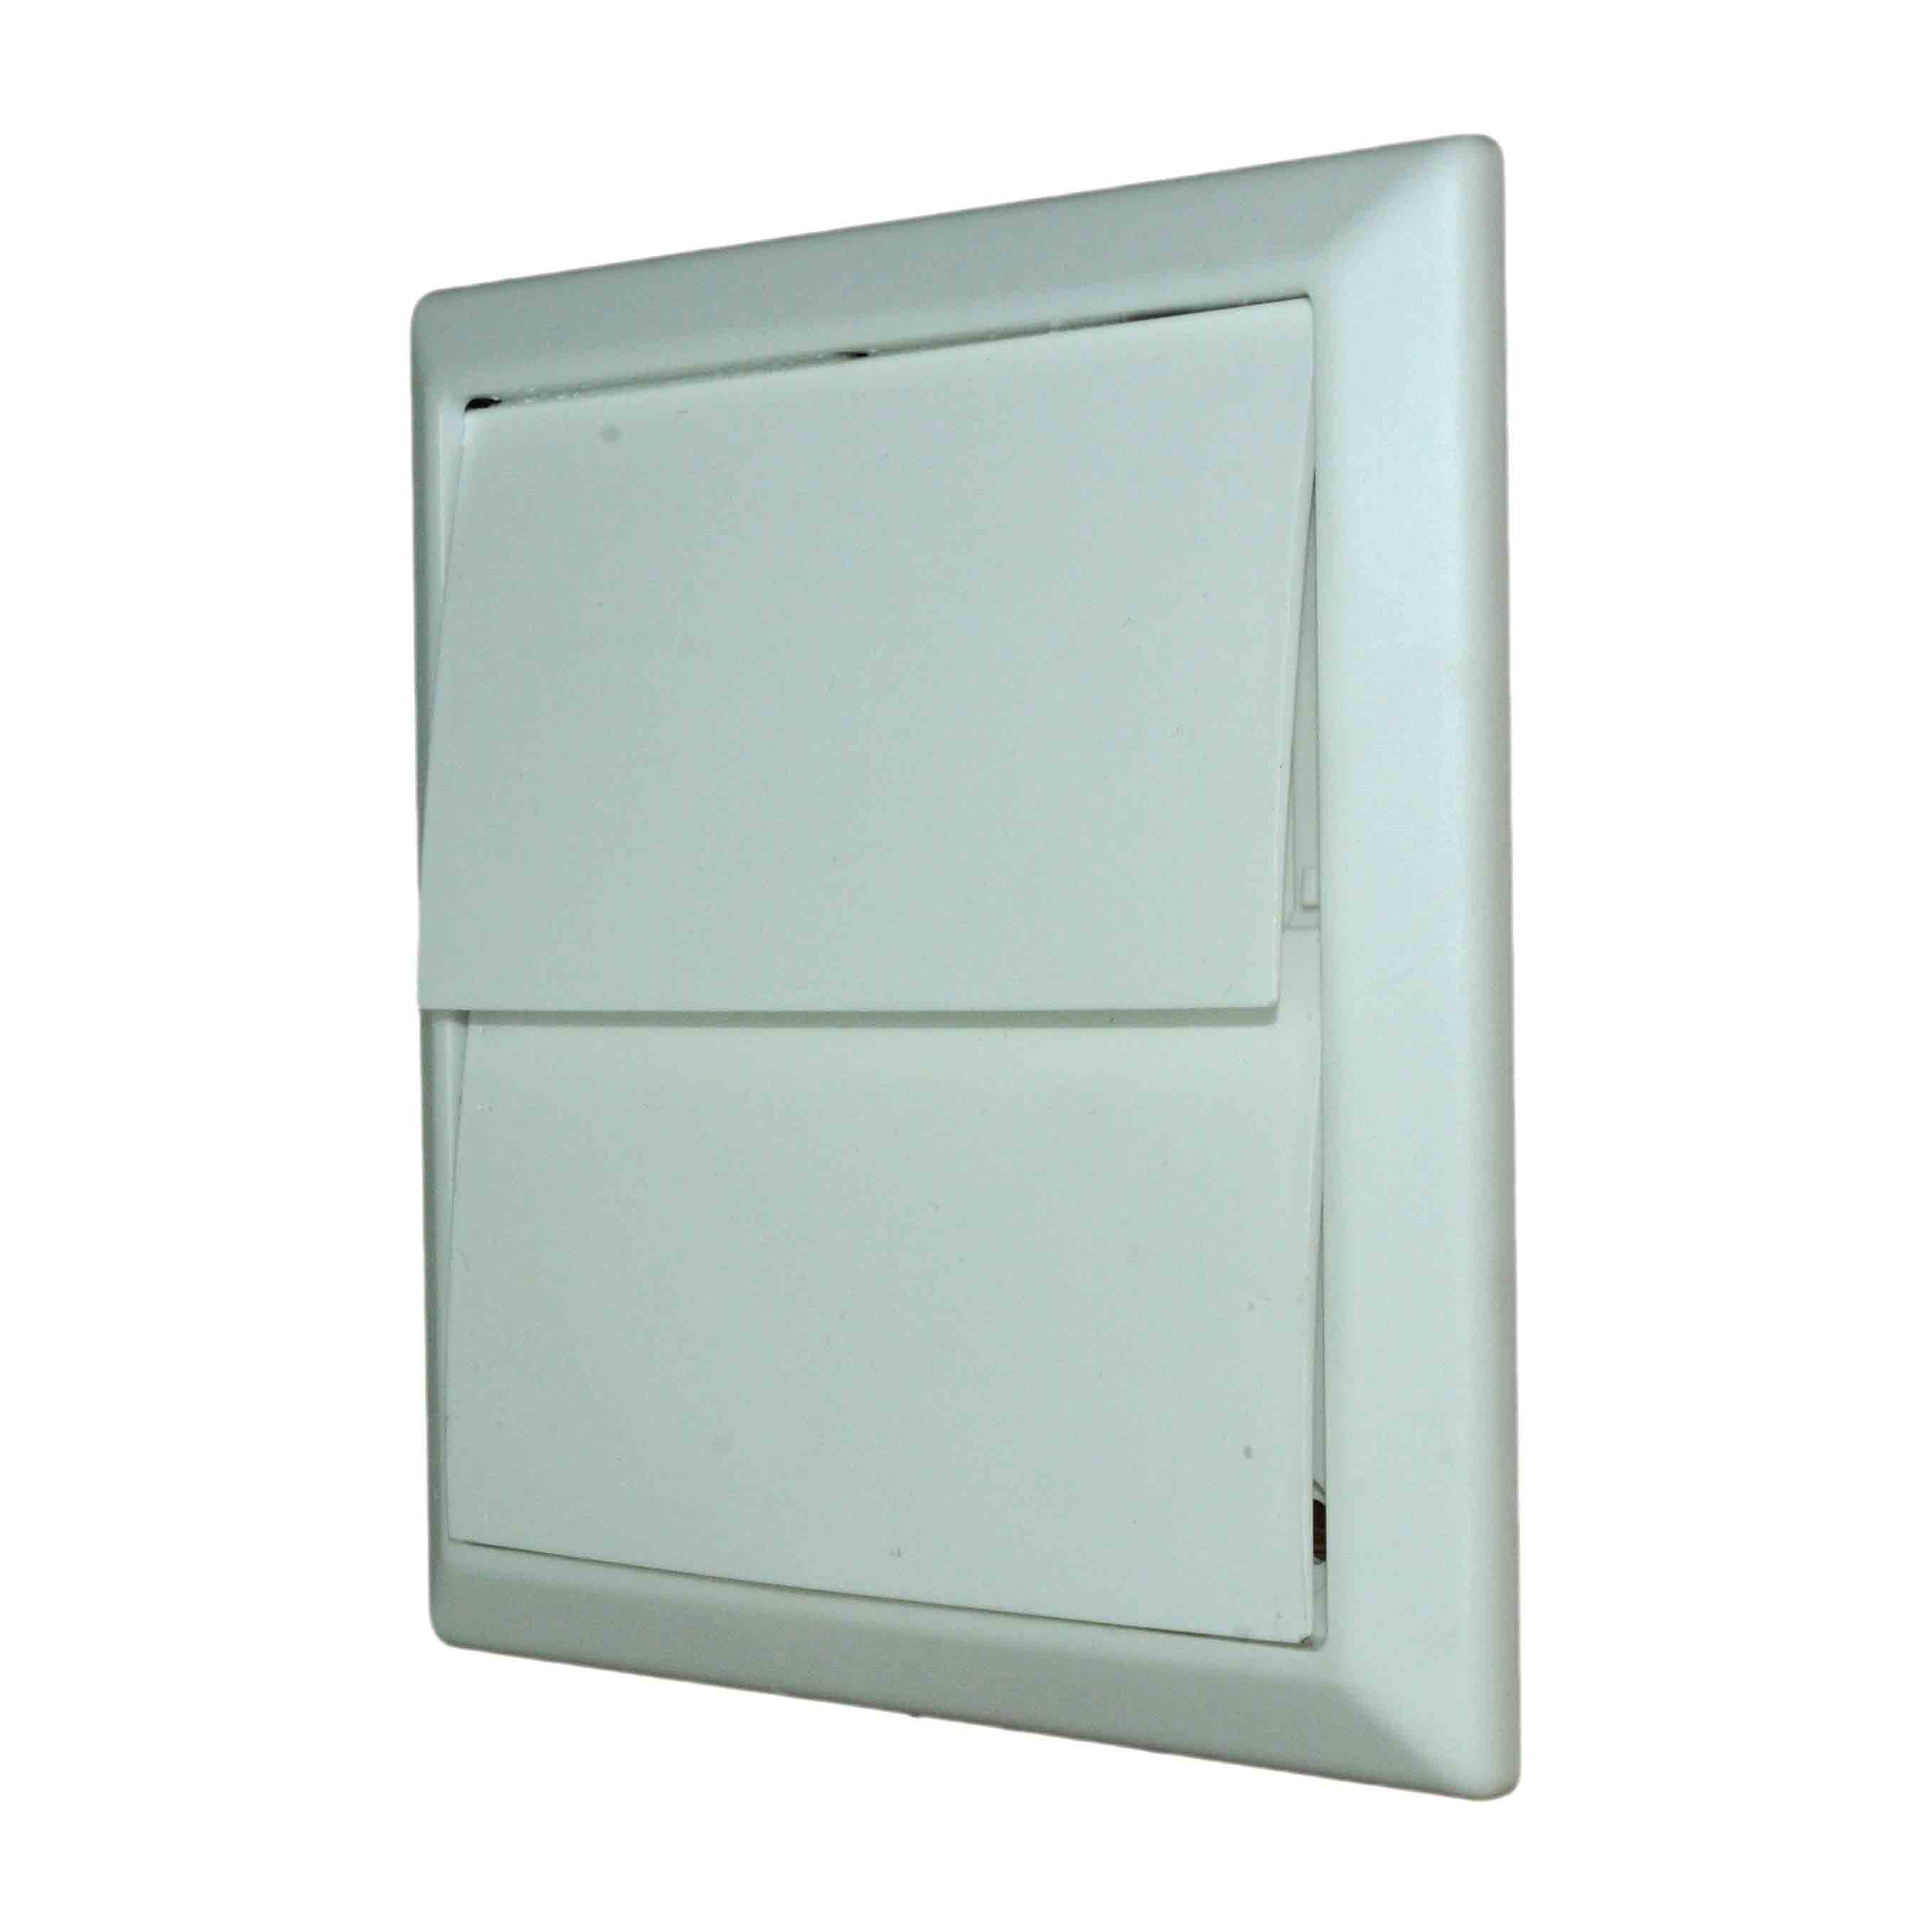 NVA 4900W 100mm White Gravity Wall Outlet